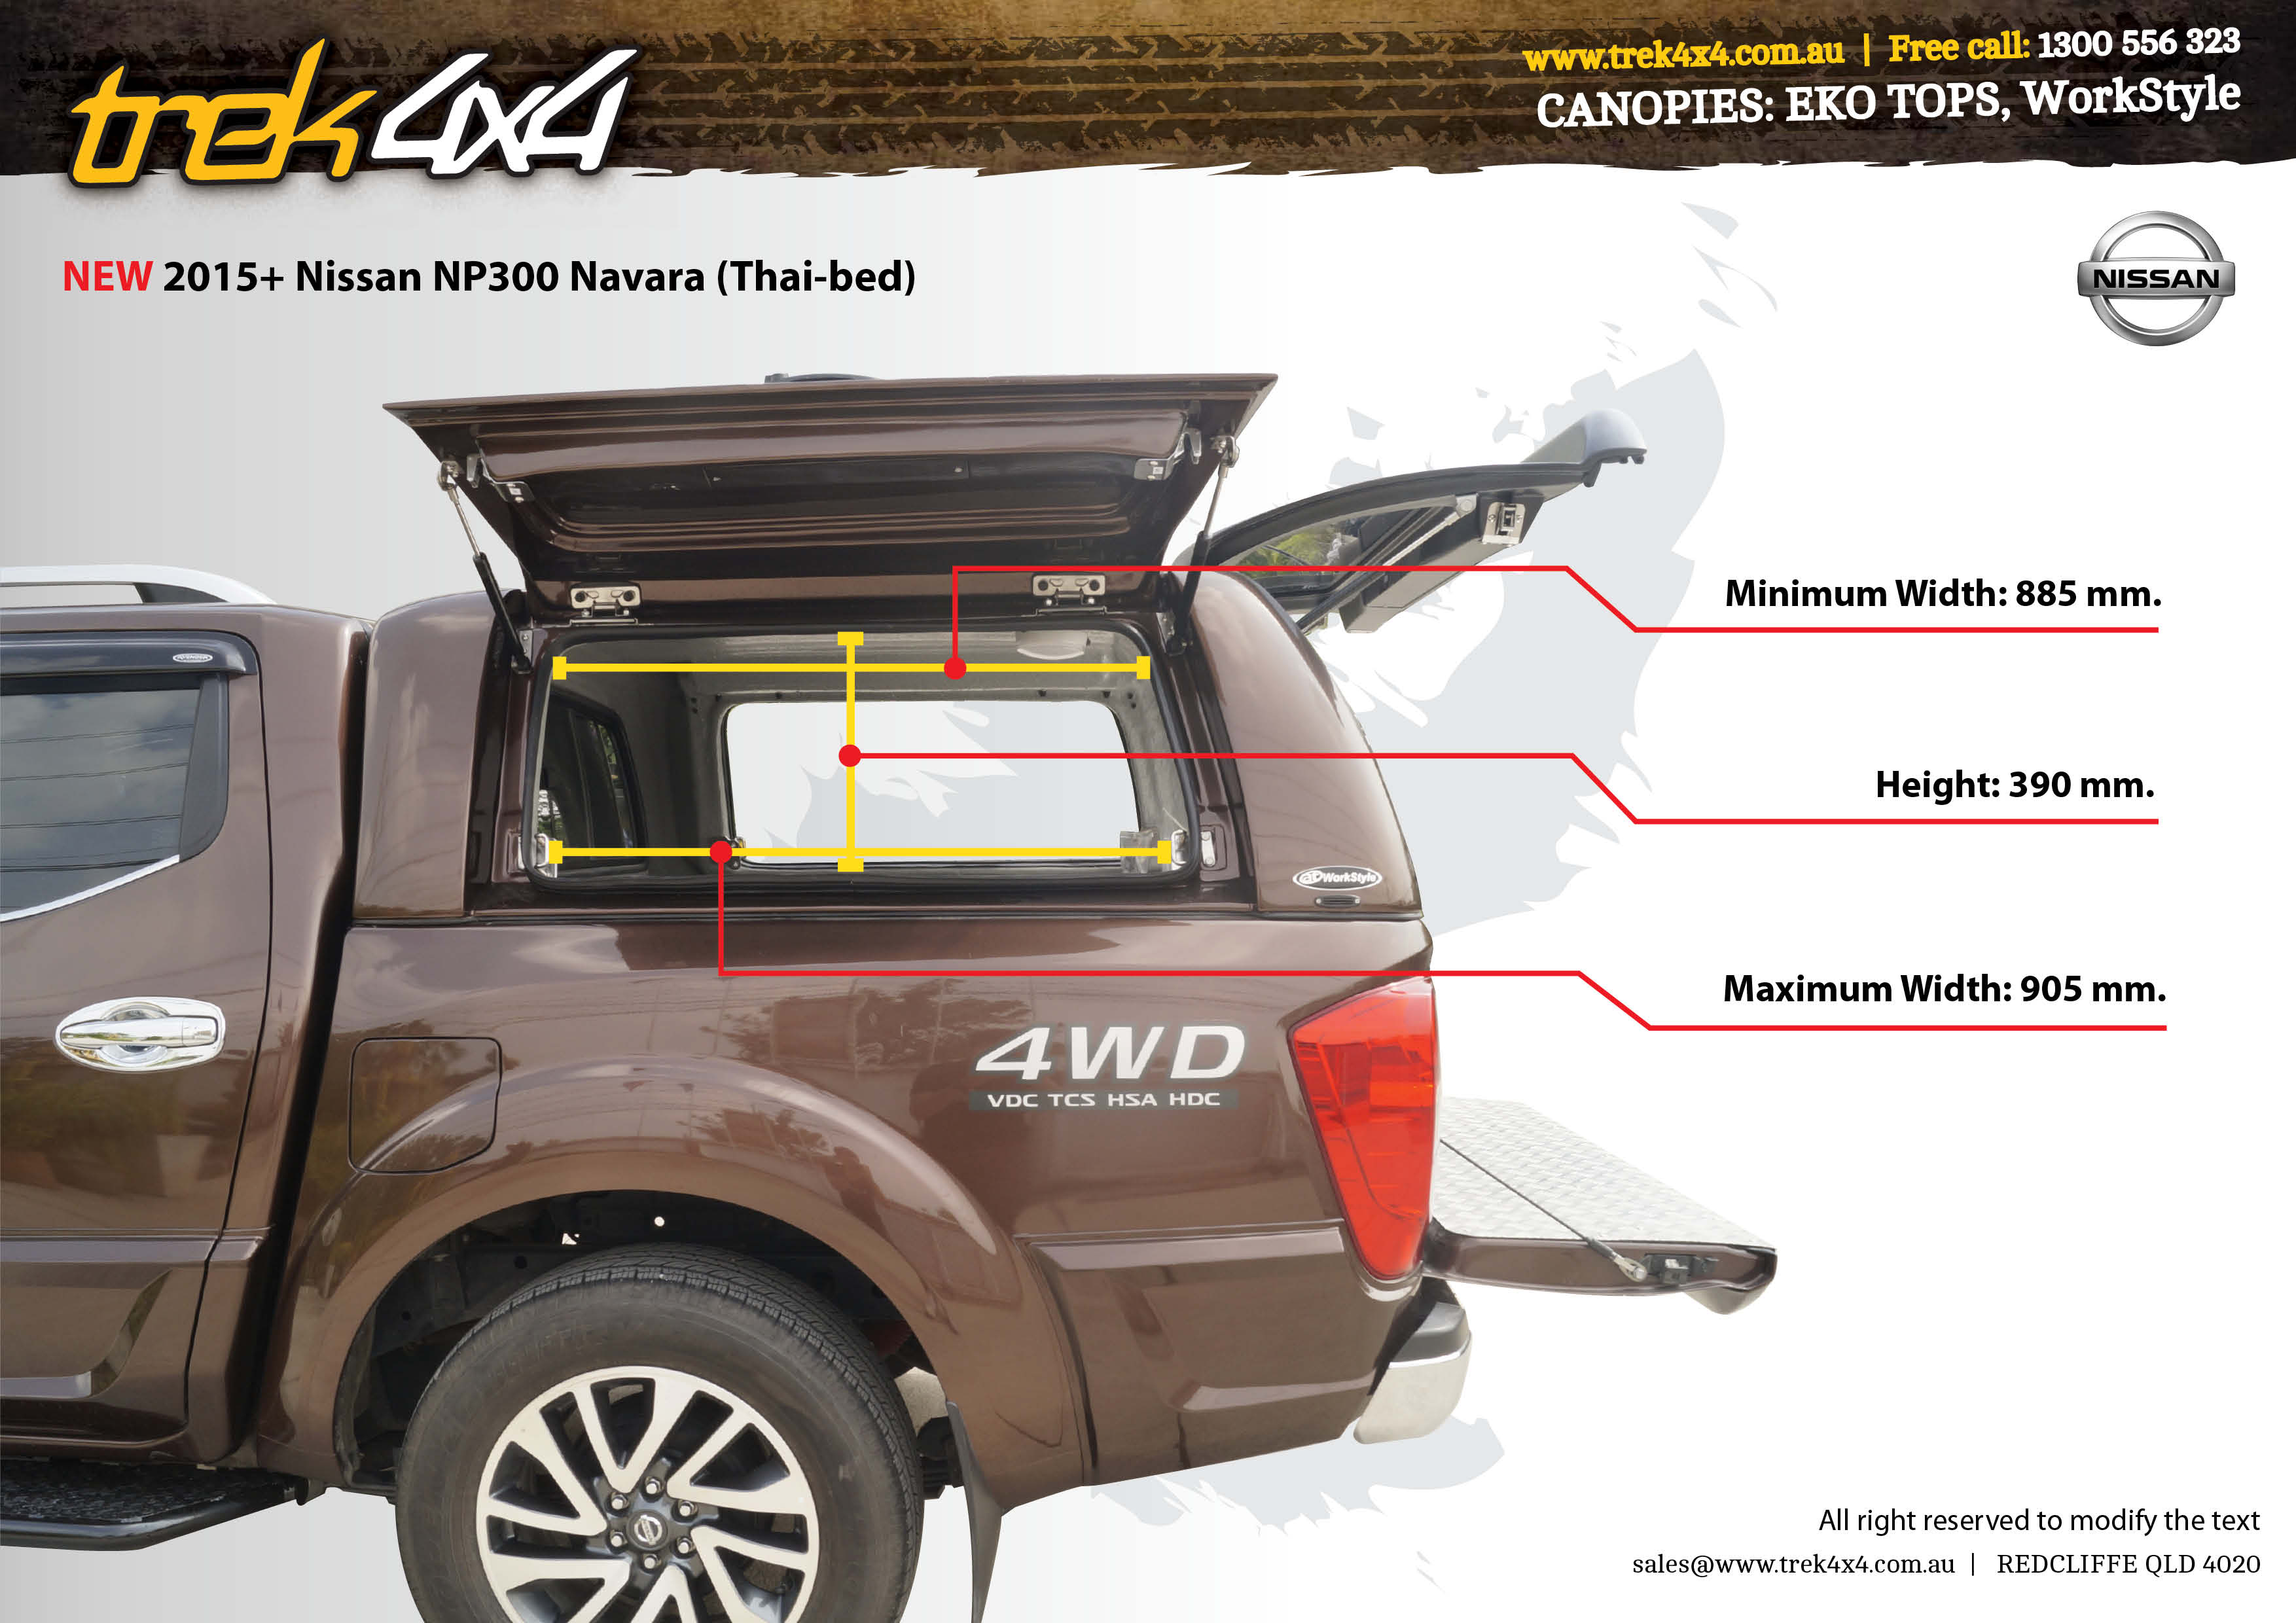 2008 Chrysler Town And Country Wiring Diagram Further Toyota 4runner